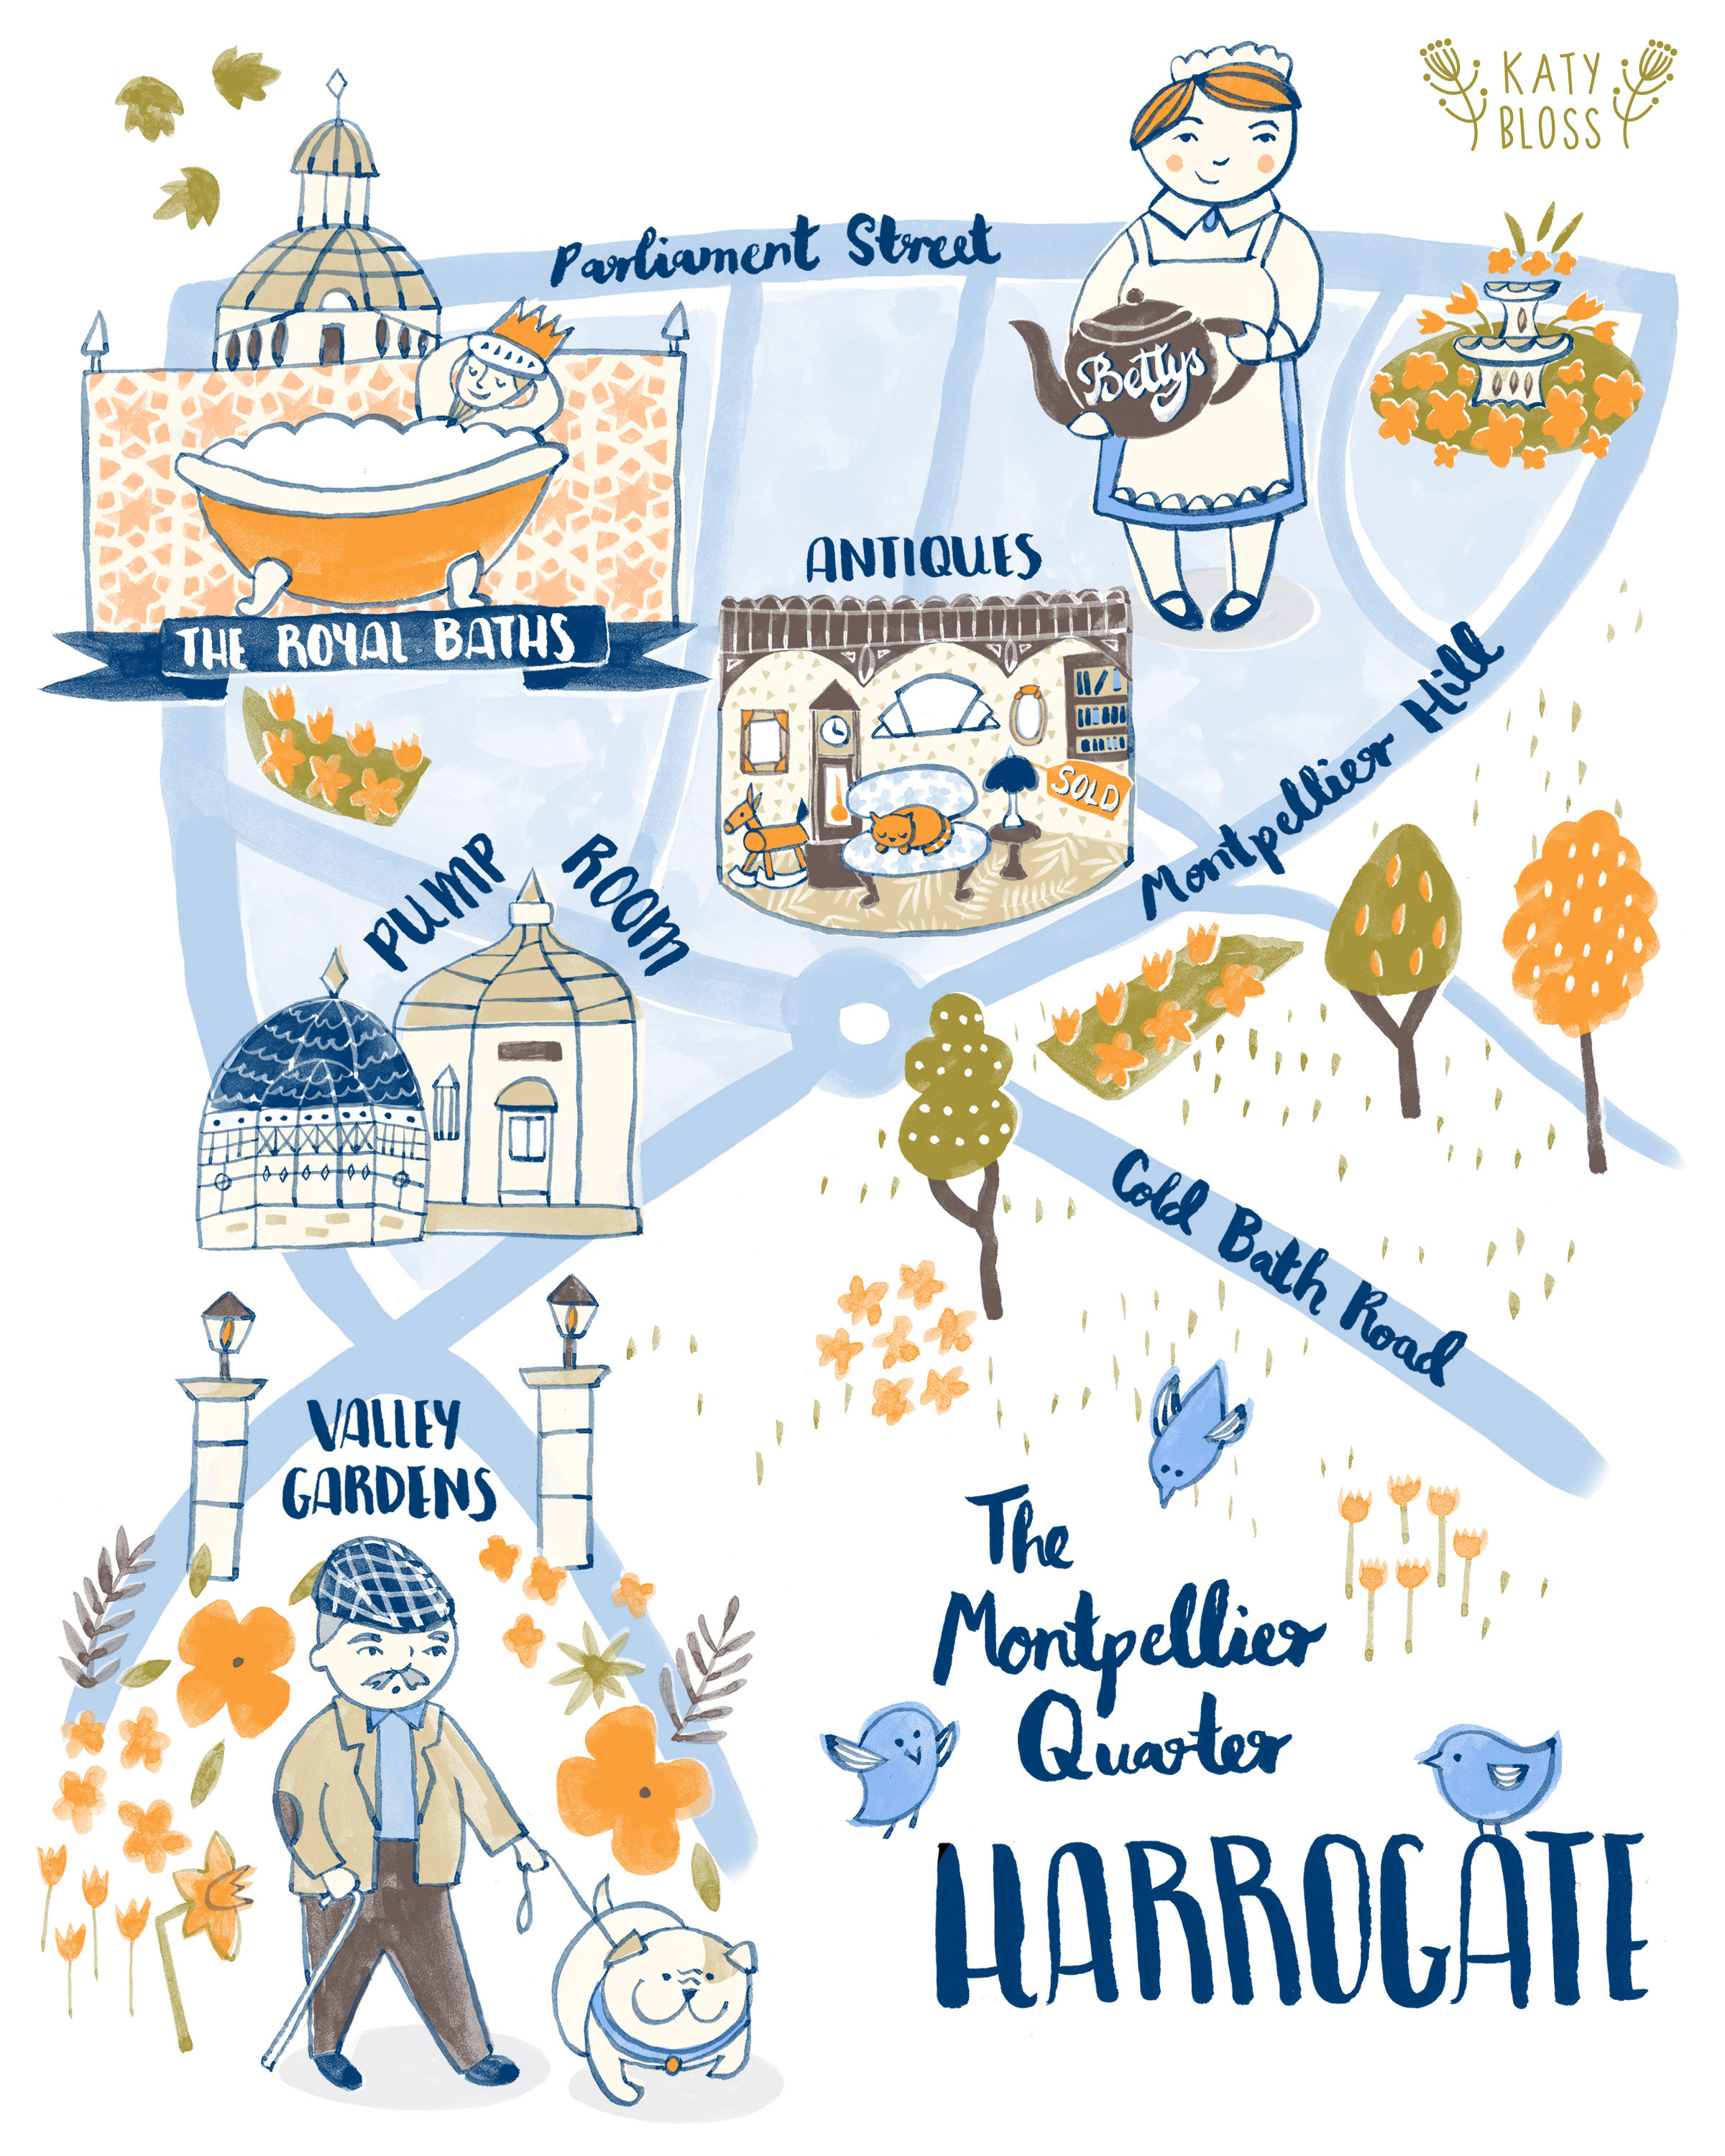 Illustrated map of Harrogate.